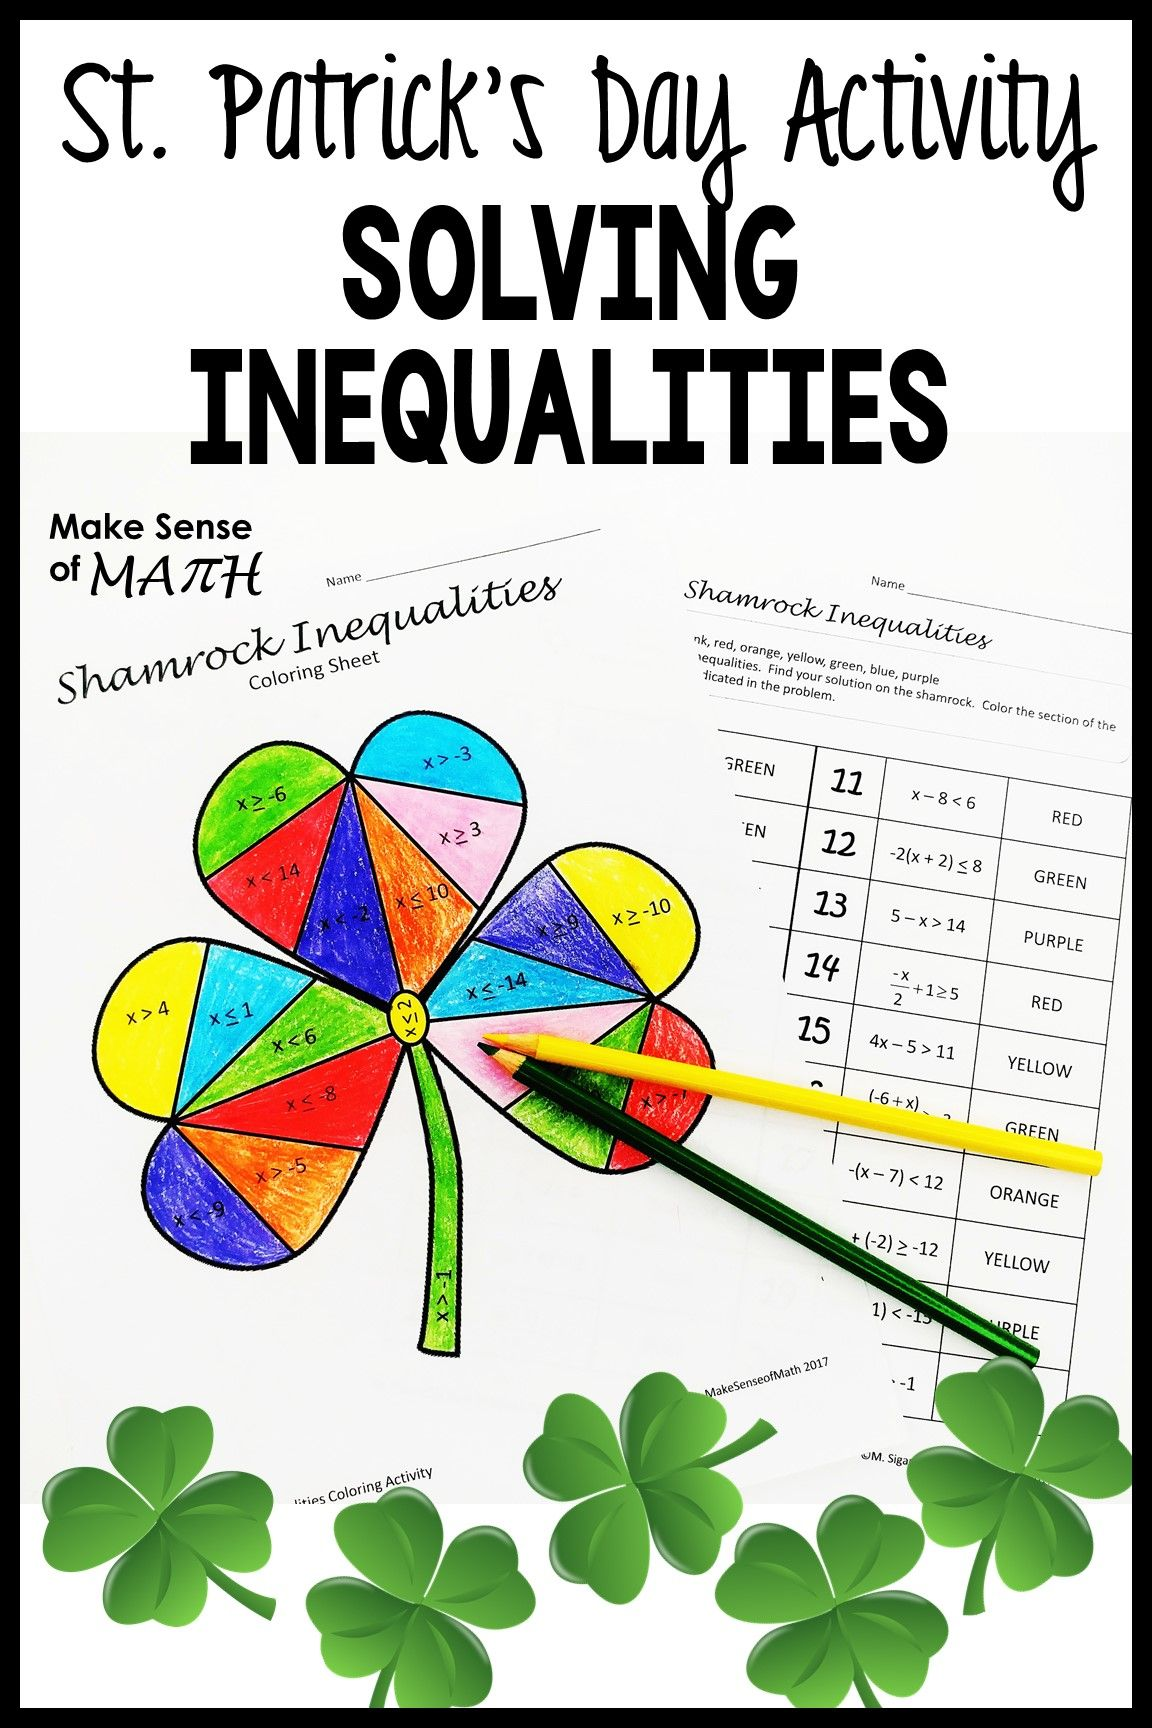 St. Patrick's Day Math Activity Solving Inequalities in